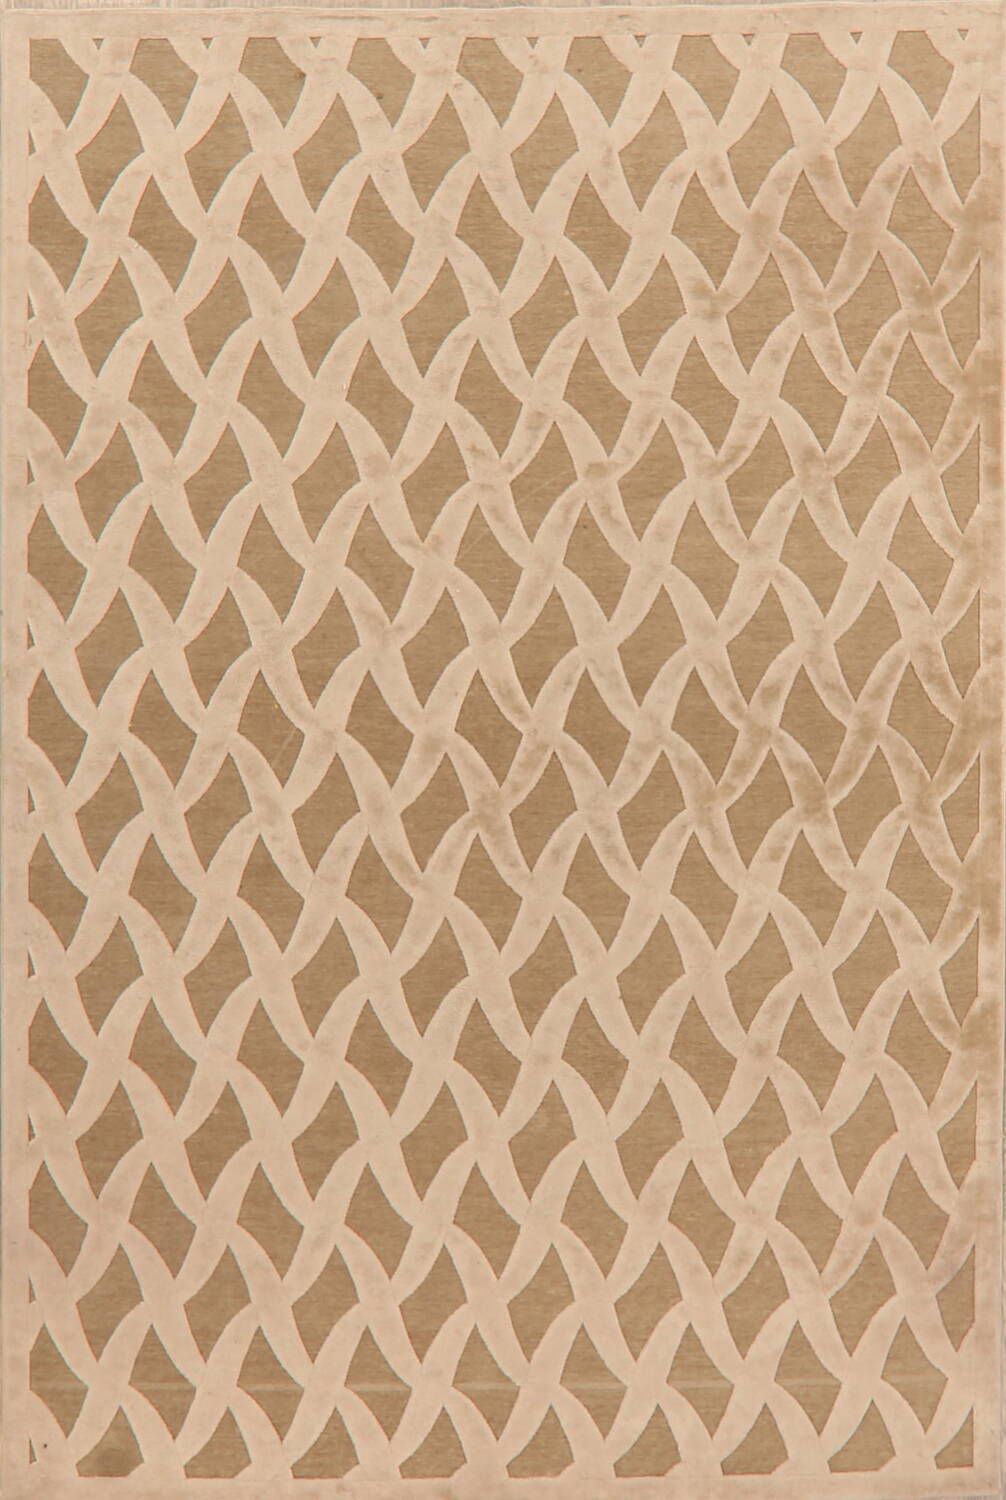 All-Over Waves Design Modern Oriental Area Rug 6x9 image 1